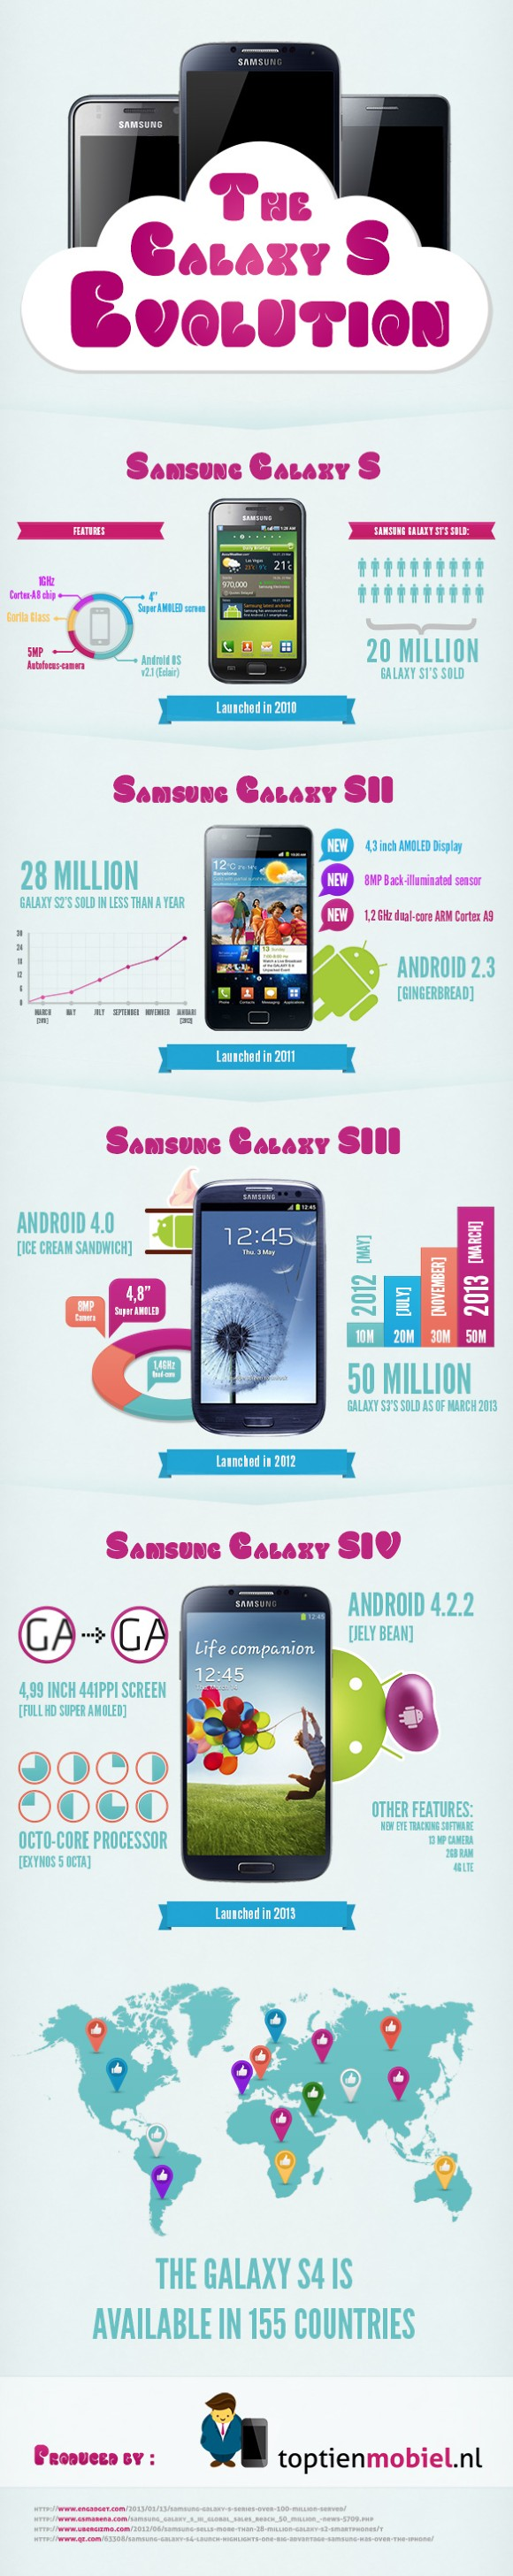 Samsung Galaxy S Evolution